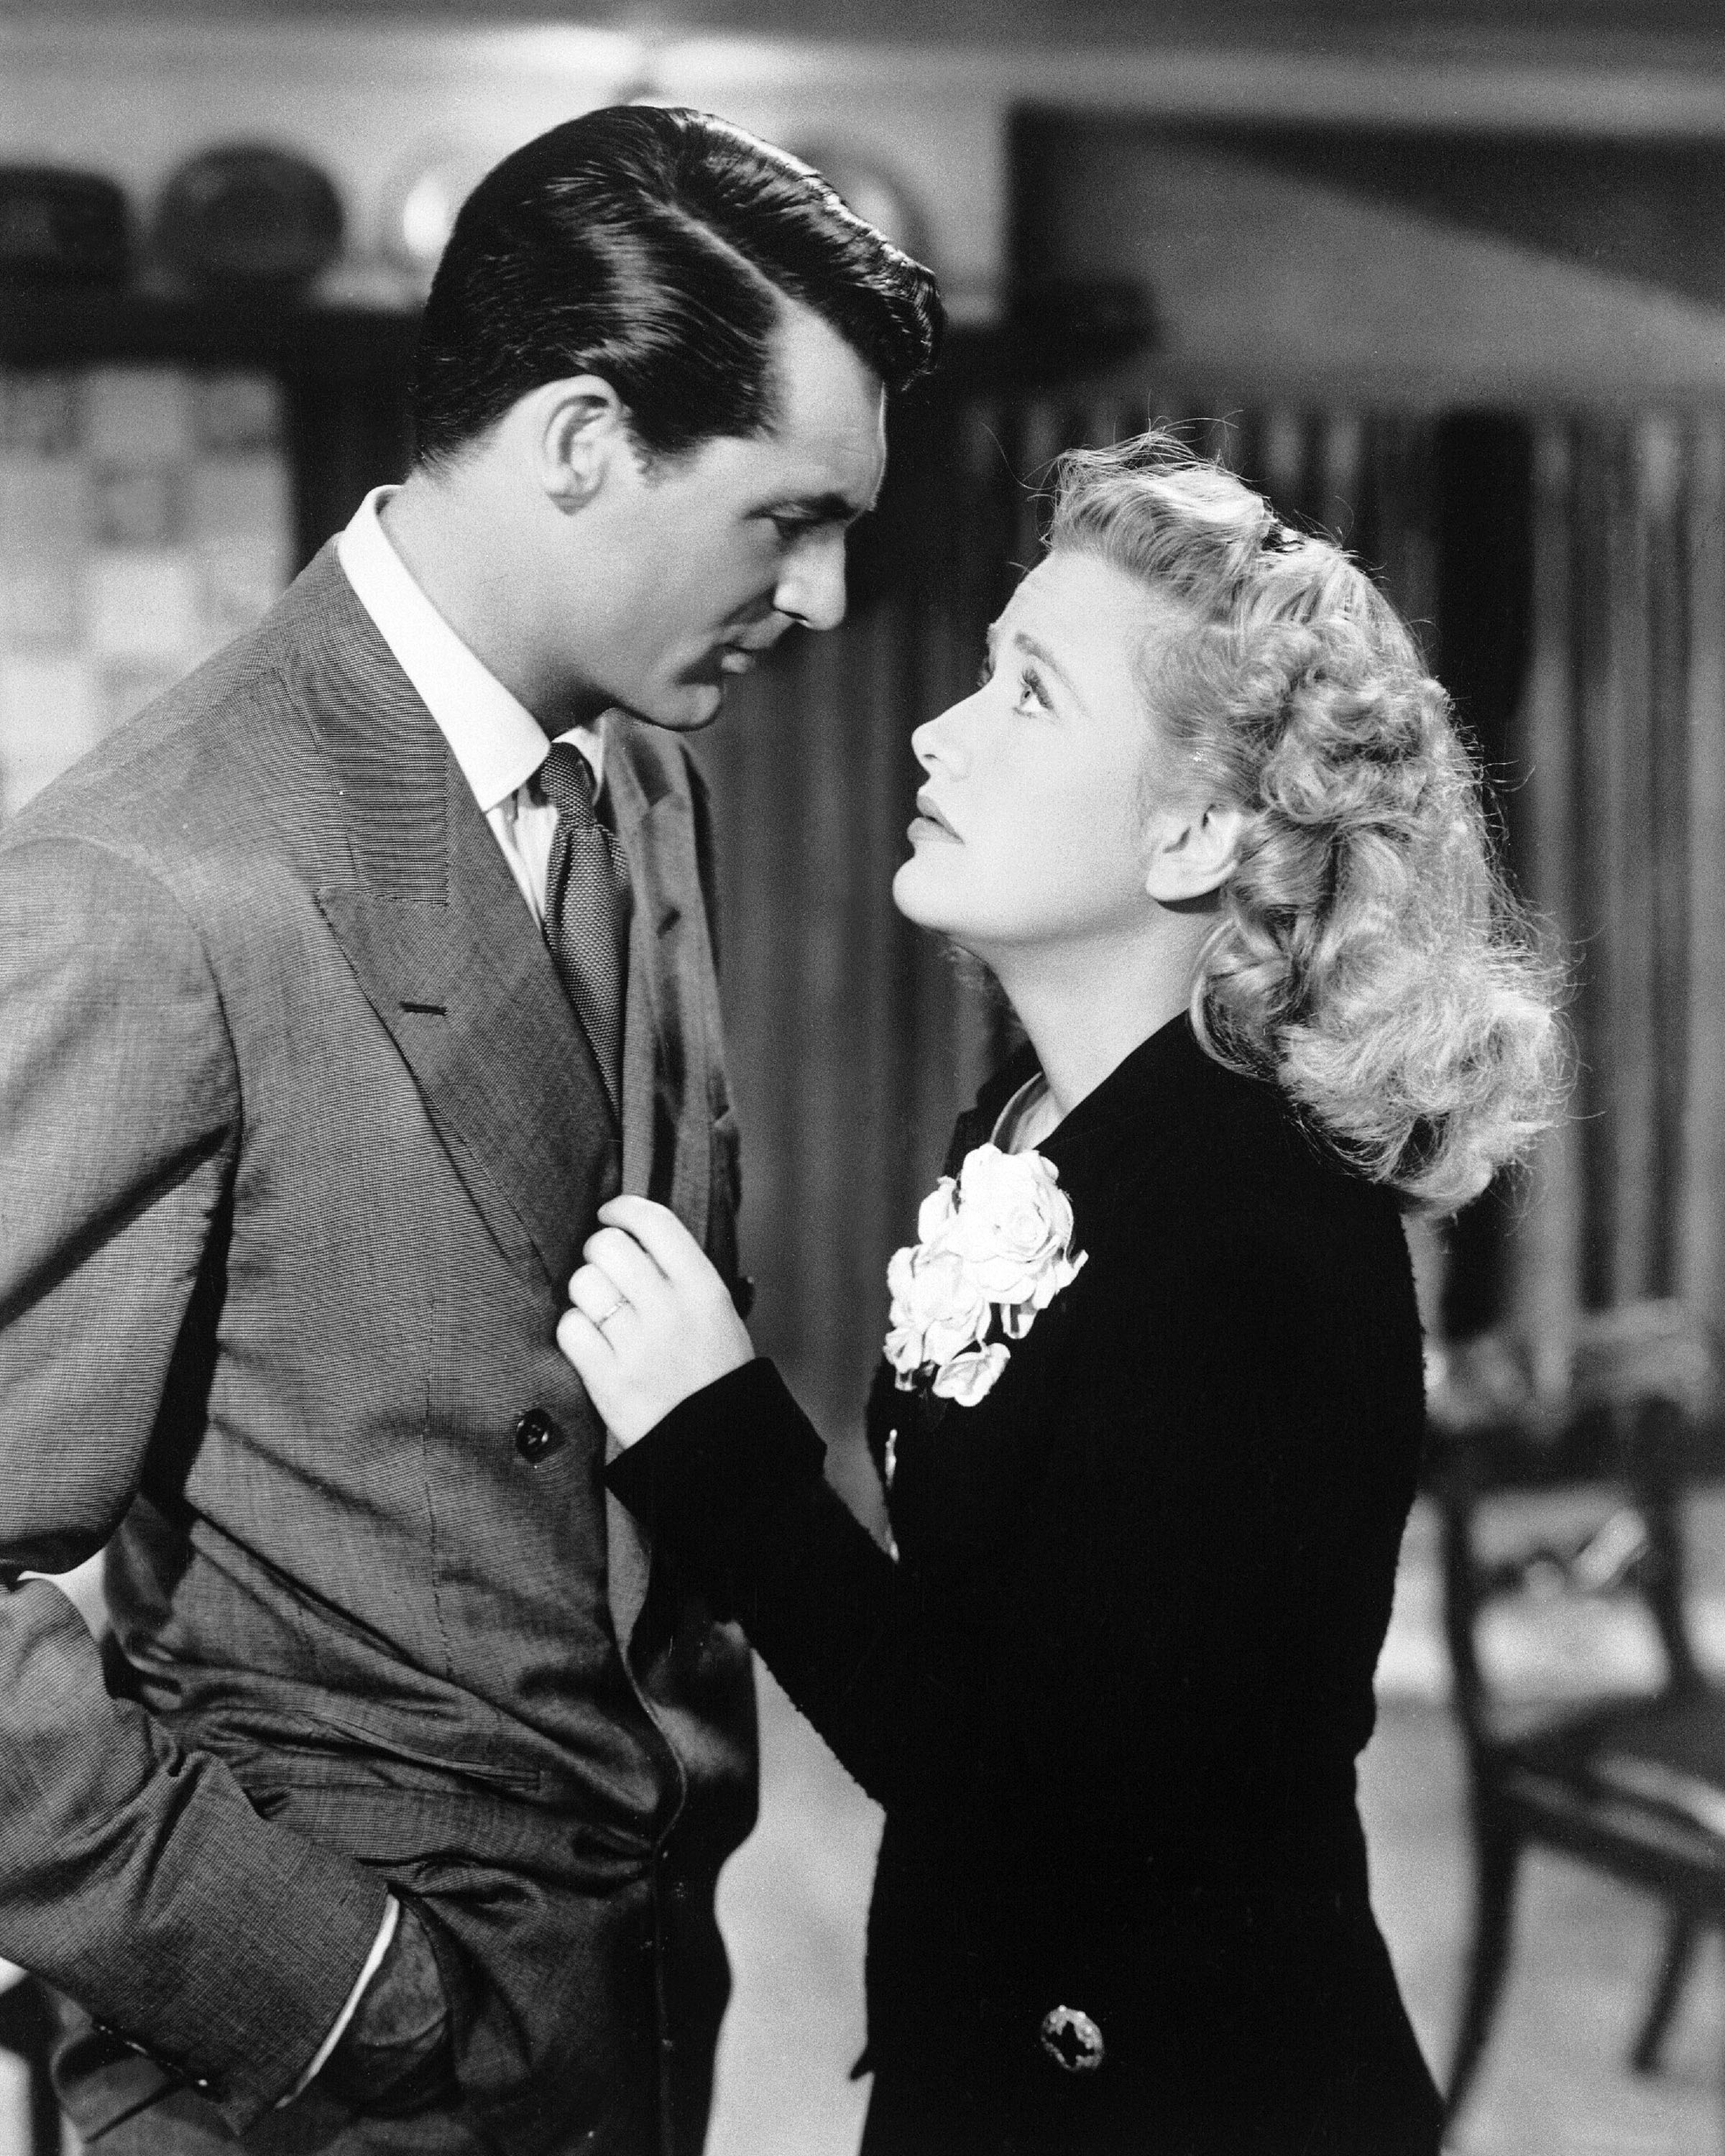 Cary Grant and Priscilla Lane in Arsenic and Old Lace (1944)